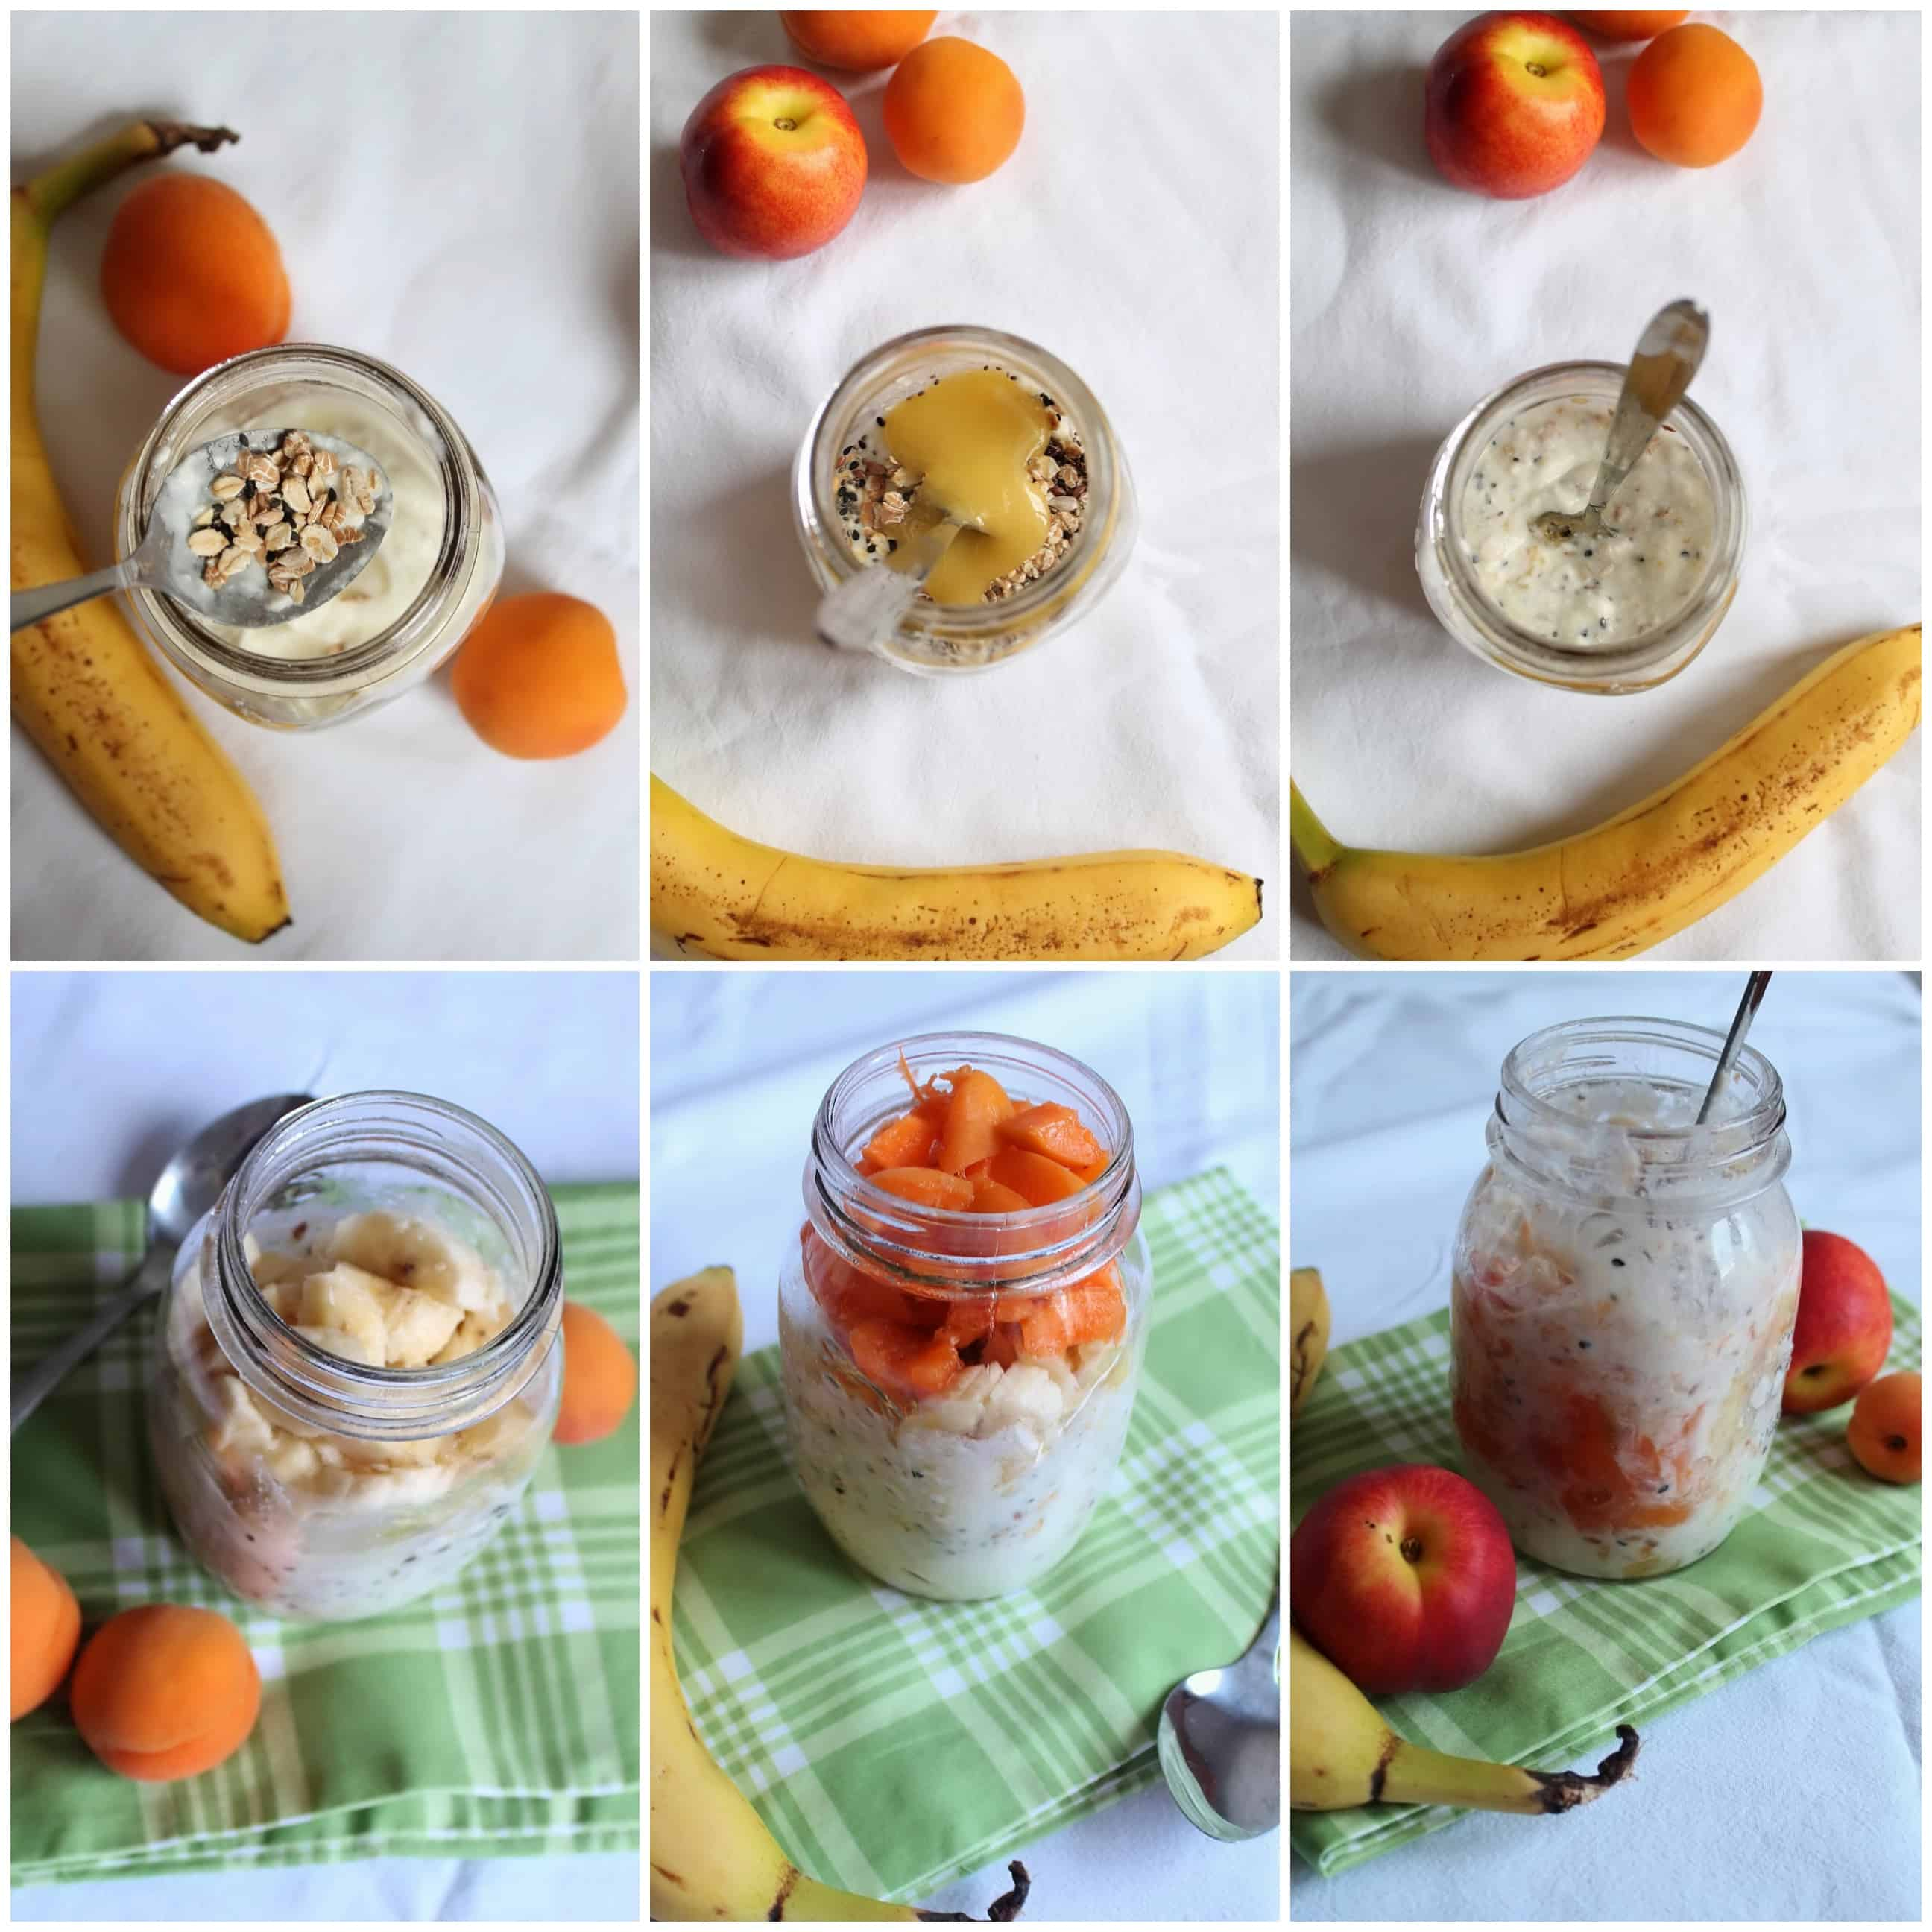 steps to make overnight oats in a jar